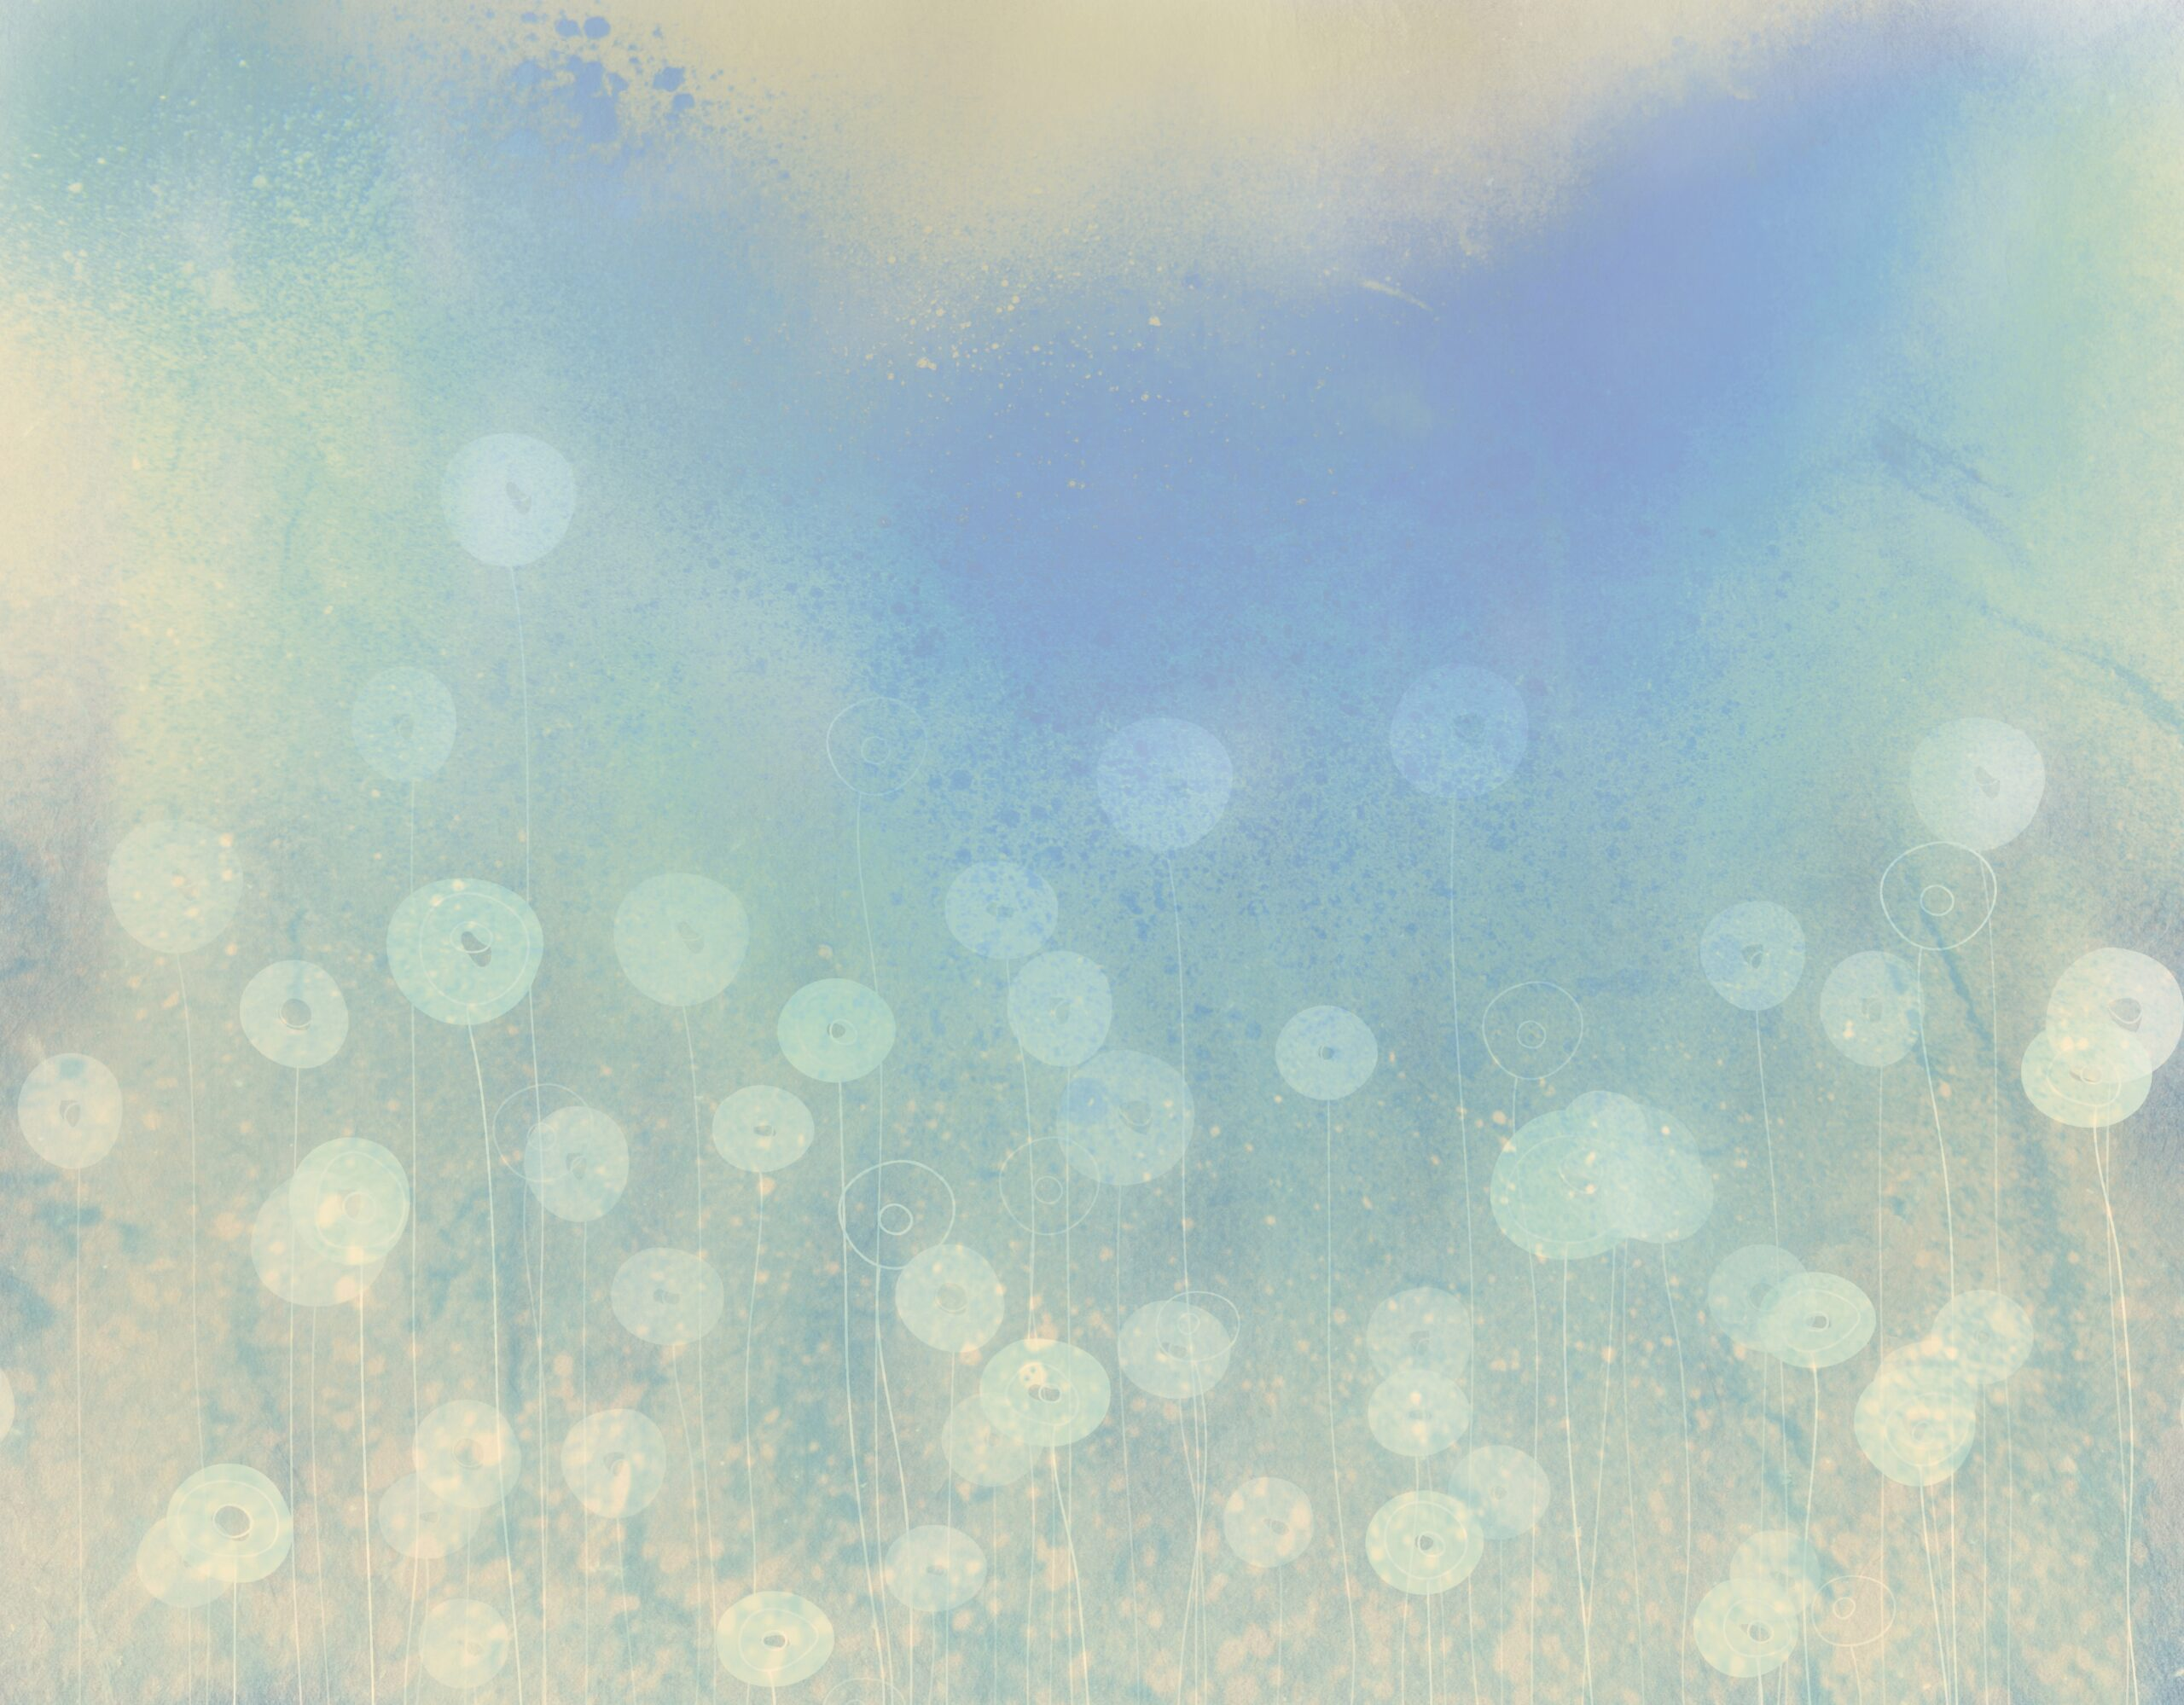 soft watercolor flowers. decorative abstract background. vintage style. suitable for a variety of designs and scrapbooking.